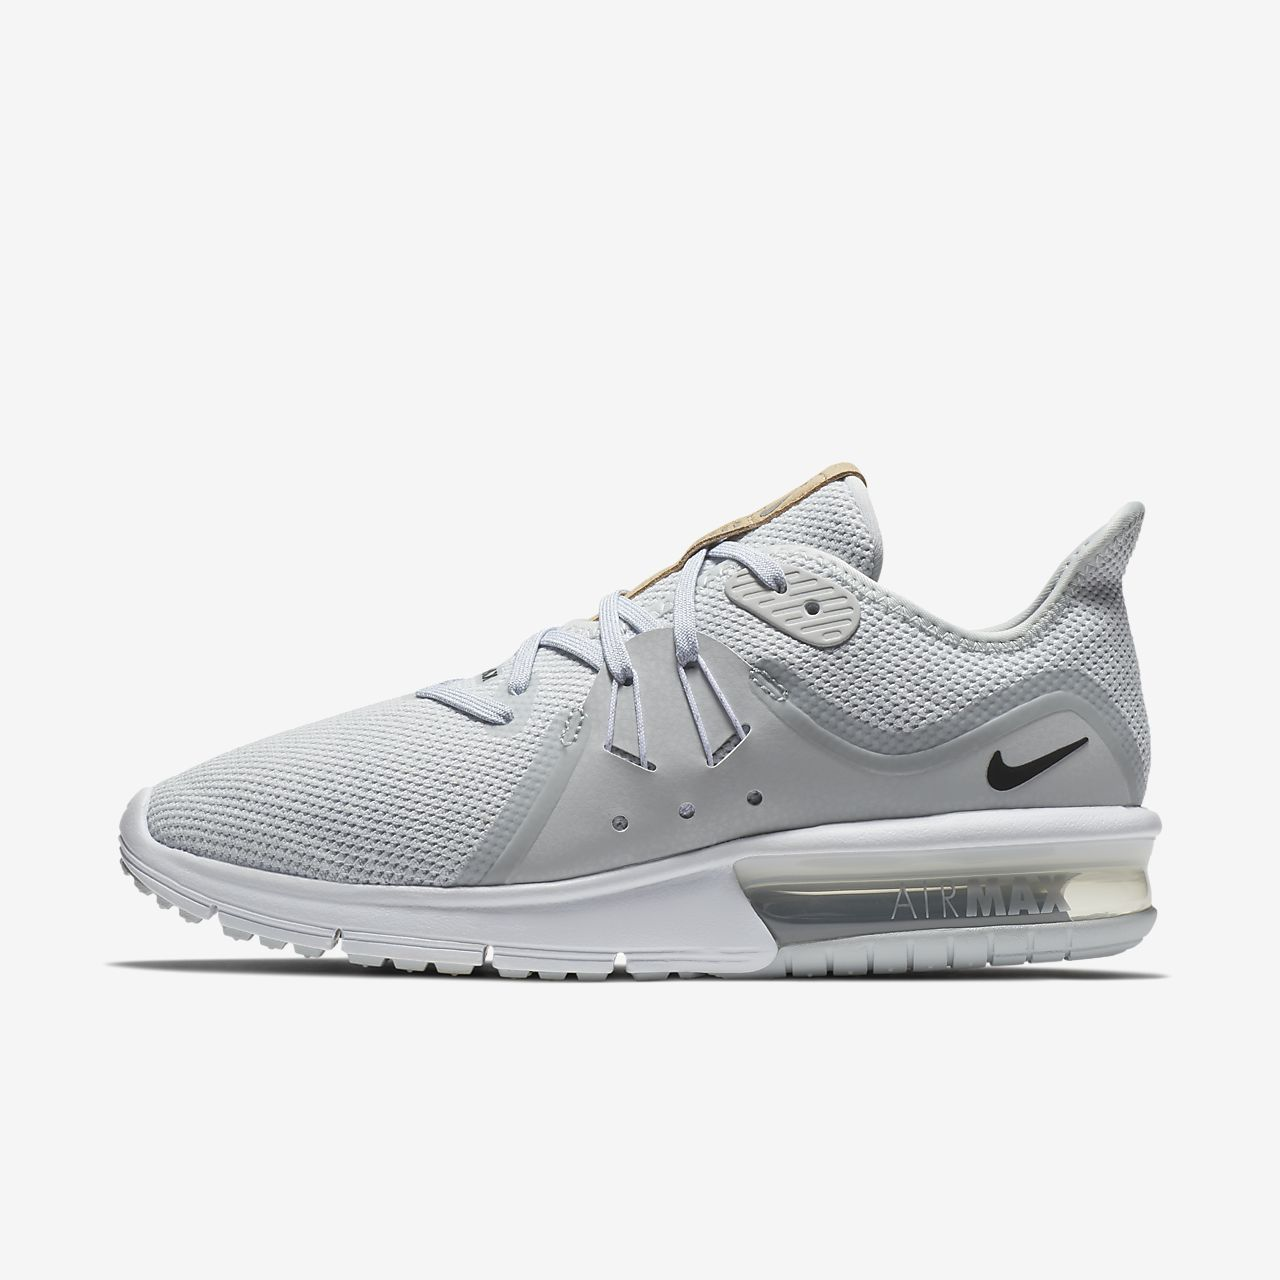 new style 4c944 94c2a Sko Nike Air Max Sequent 3 för kvinnor